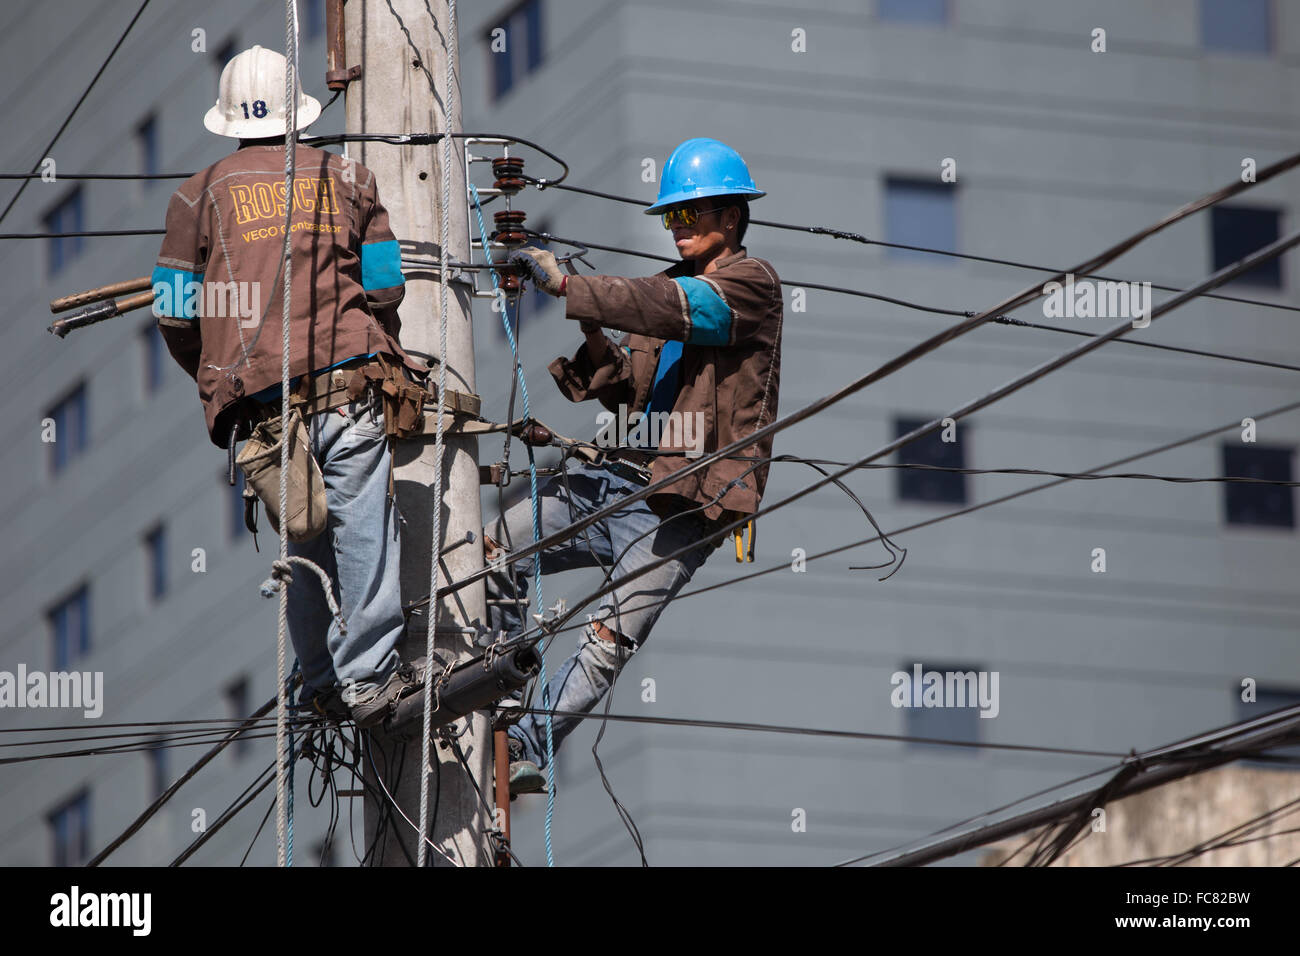 Cebu City,Philippines,Electricity Company employees working on overhead power lines. - Stock Image